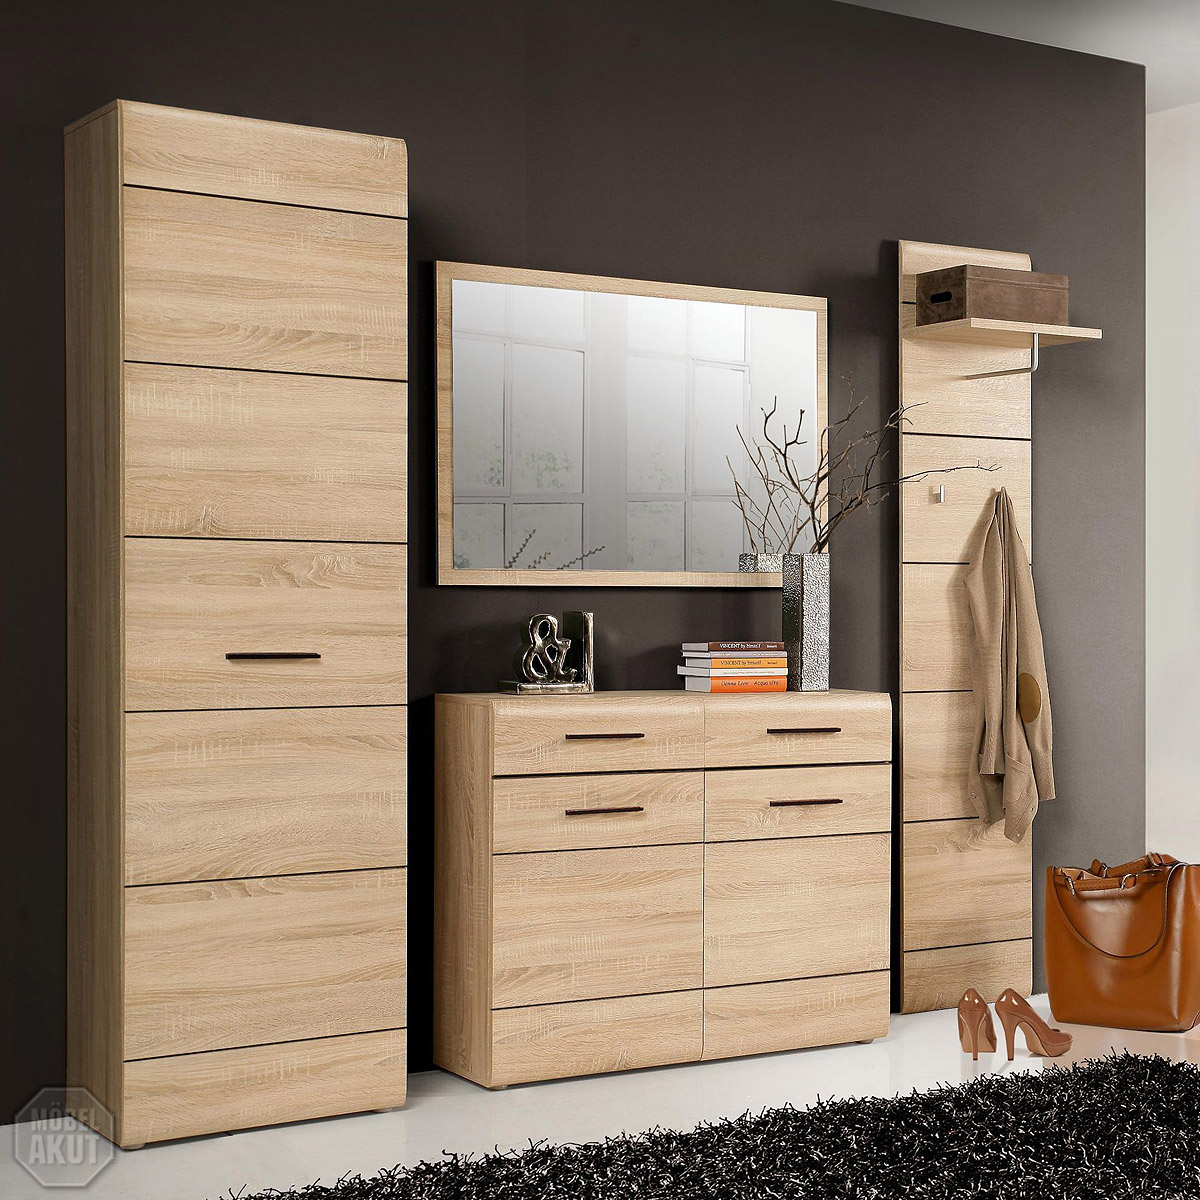 garderobenset 2 combino garderobe schuhschrank spiegel sonoma denver eiche ebay. Black Bedroom Furniture Sets. Home Design Ideas